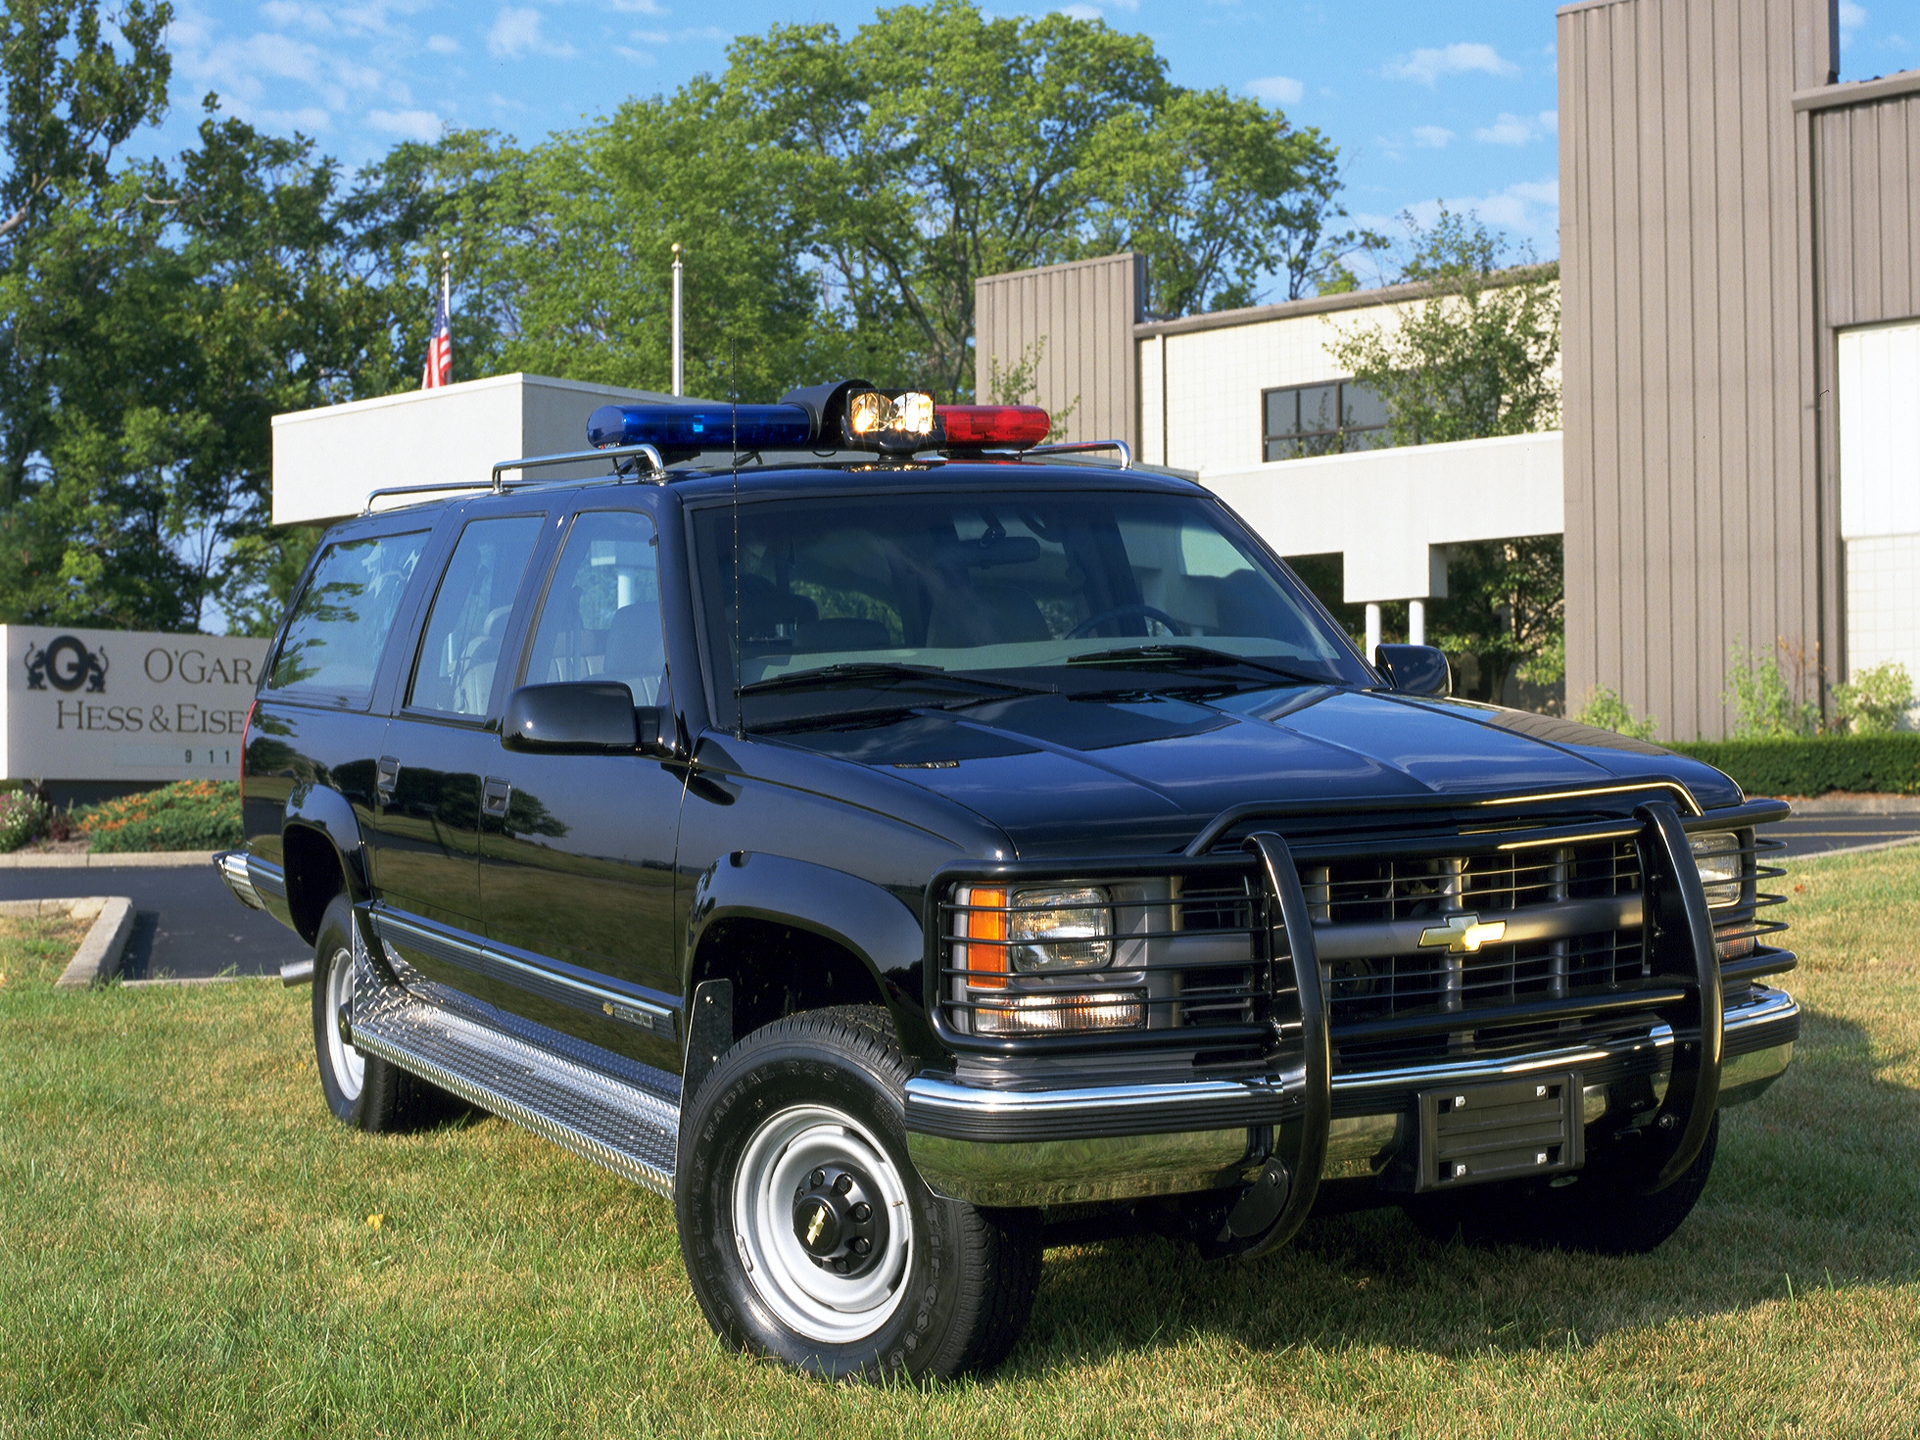 Armored Vehicles For Sale >> 1992 Armored Chevrolet Suburban K2500 O-Gara-Hess Eisenhardt GMT400 4x4 police wallpaper ...